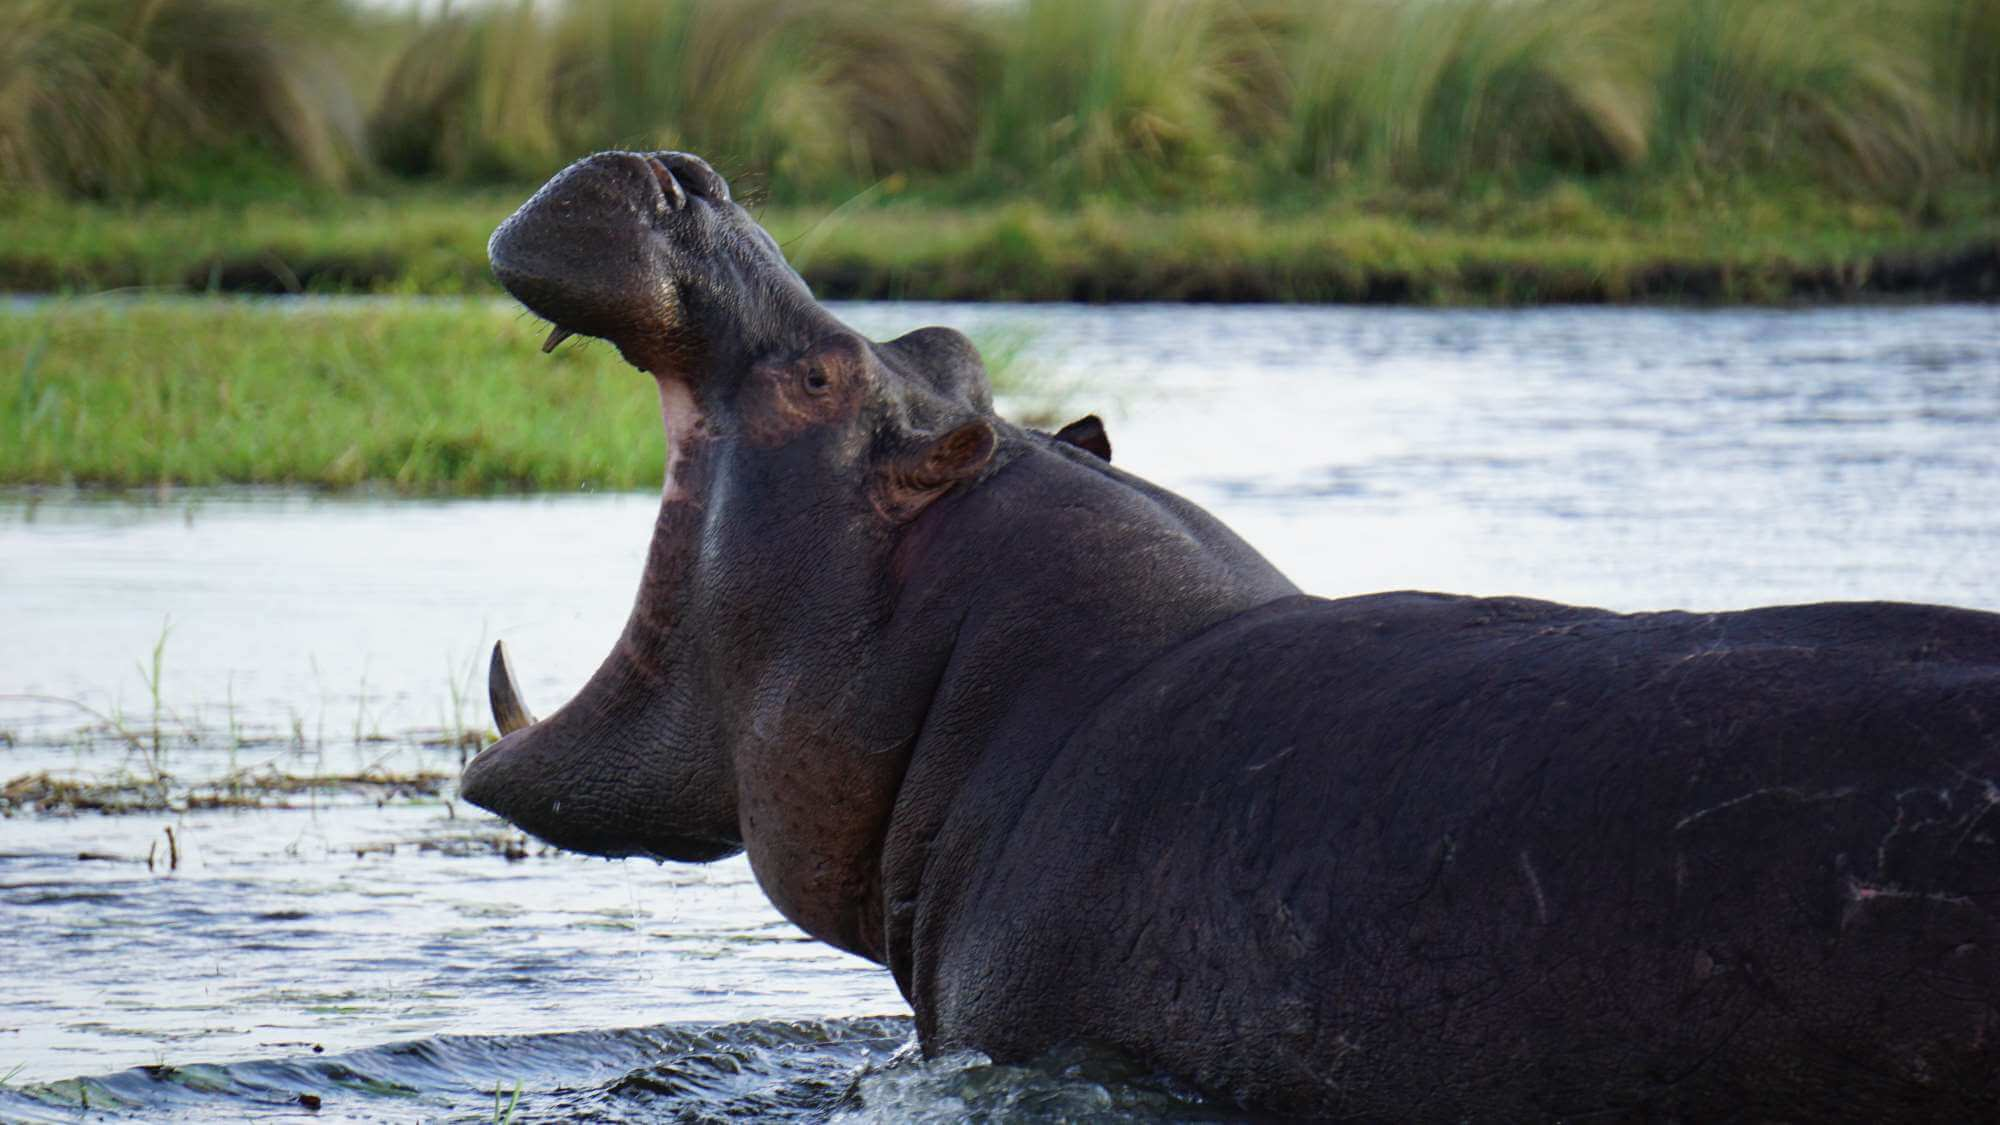 Okavango Delta Safari: just 4 nights but intensive.